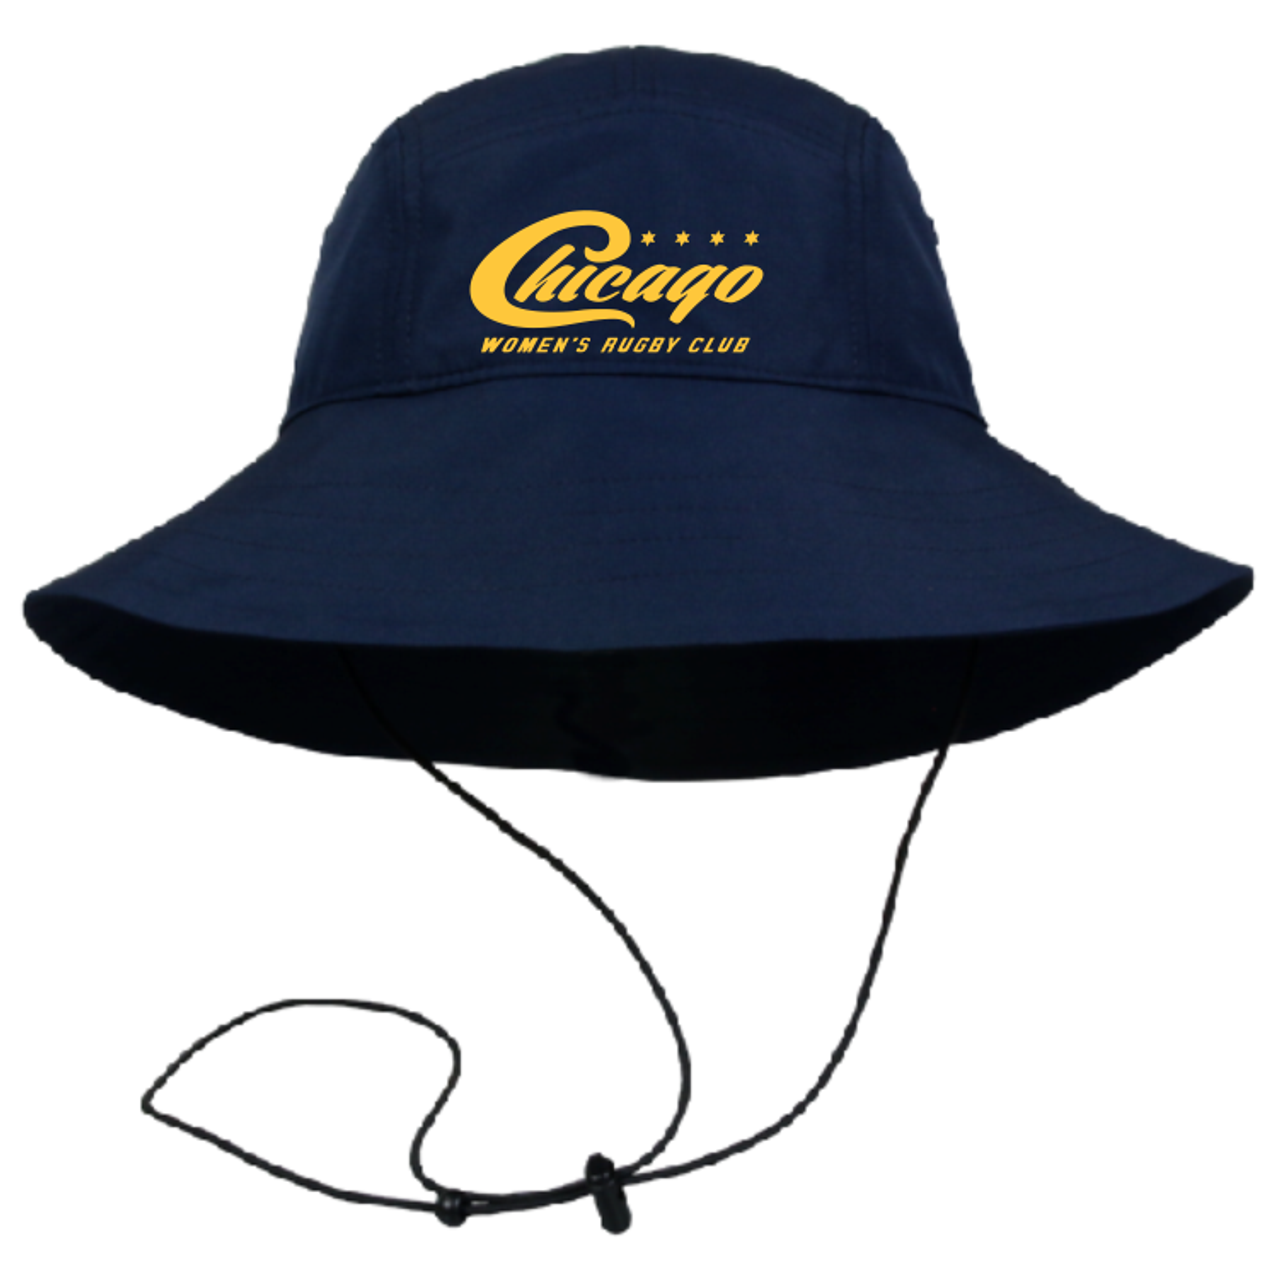 Chicago WRFC Boonie Hat